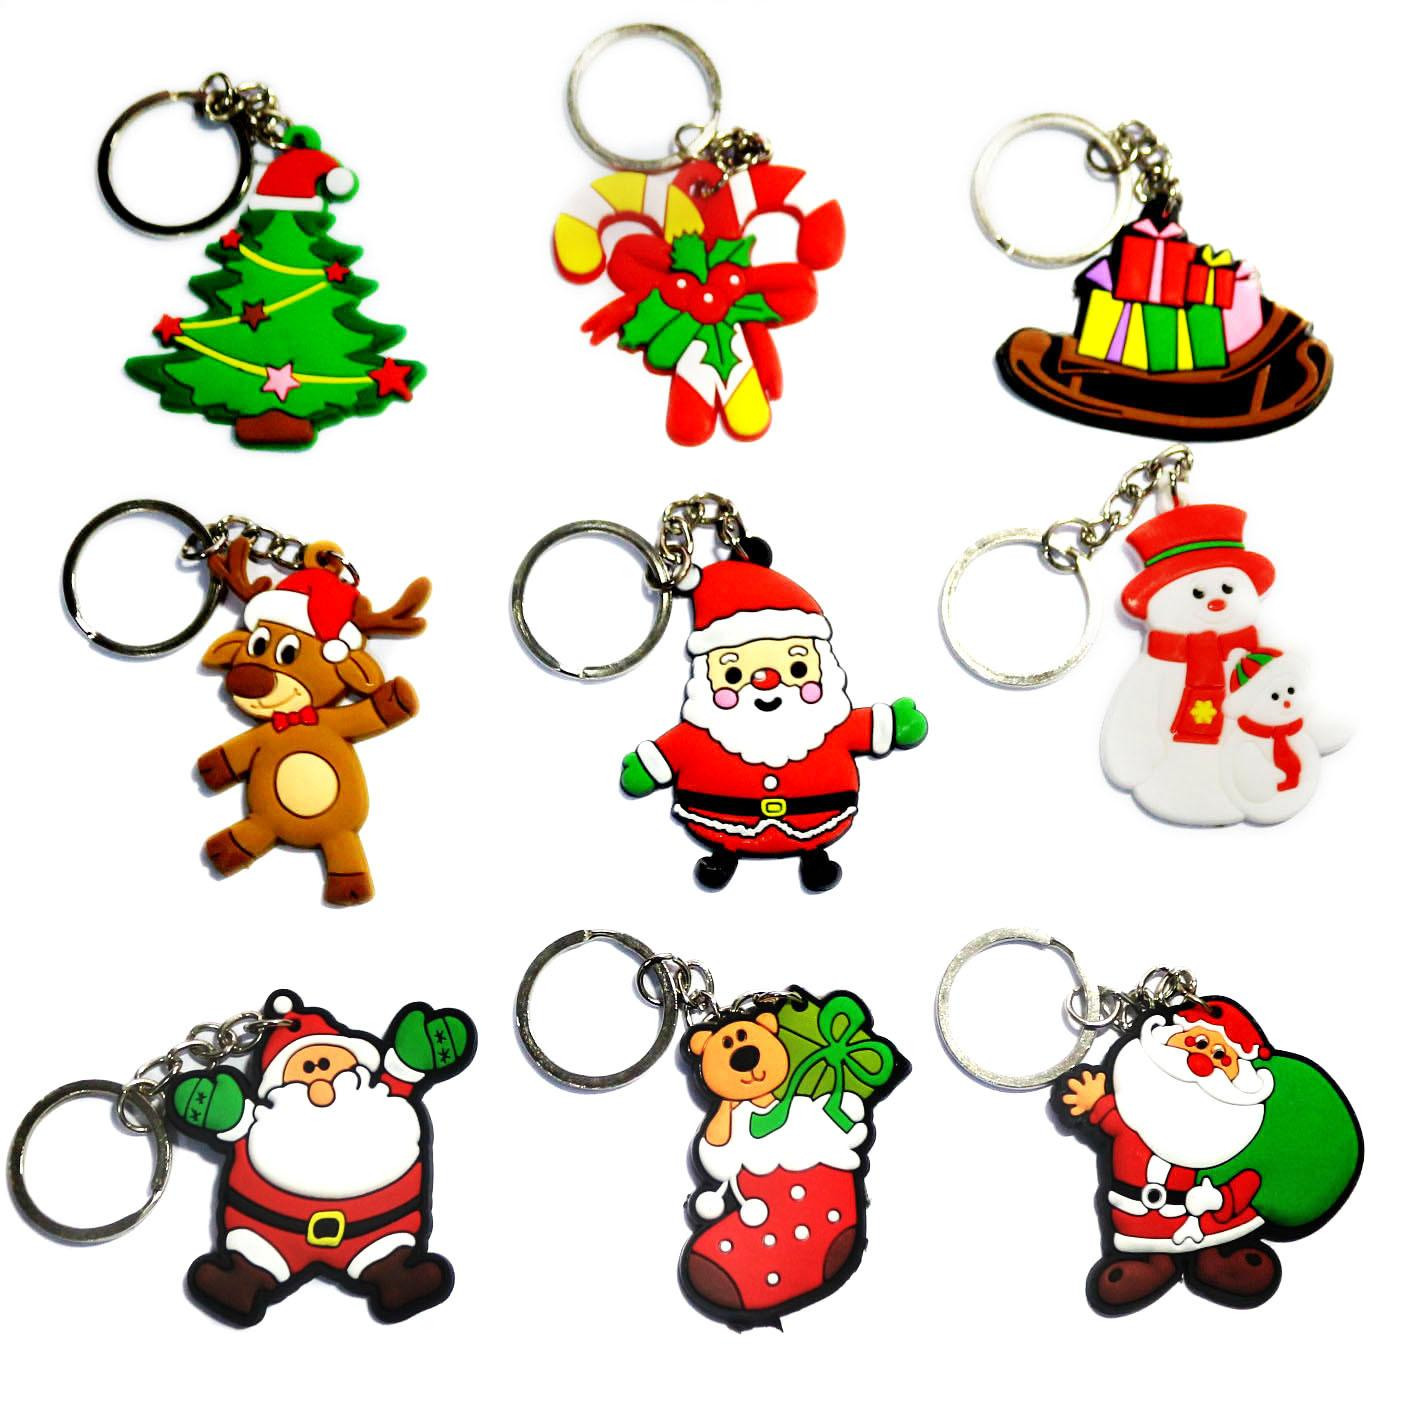 Spot christmas gifts series santa pvc soft keychain pendant gift spot christmas gifts series santa pvc soft keychain pendant gift goods wholesale online with 38541piece on jiaxin568s store dhgate negle Images